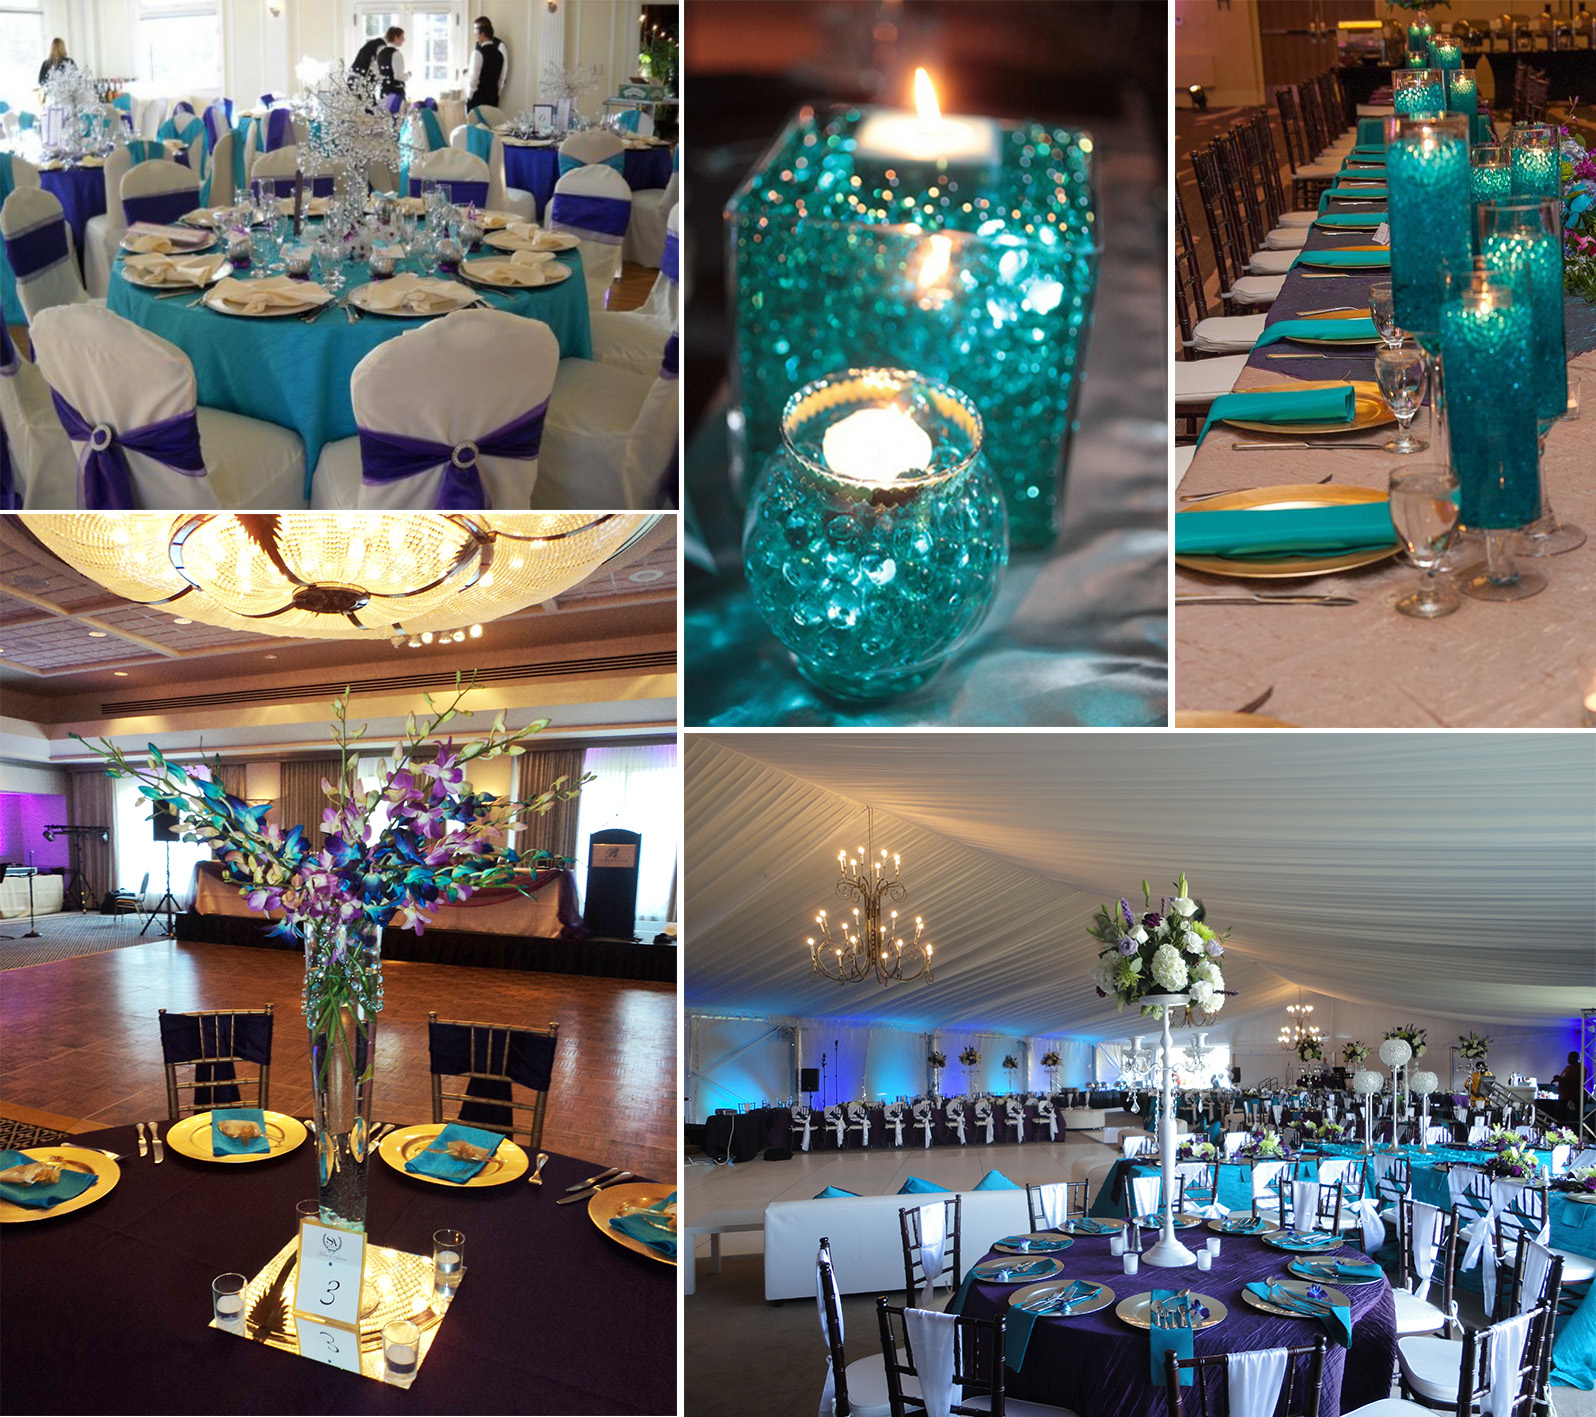 Teal Green Wedding Decorations Purple And Teal Wedding Venue Uk teal green wedding decorations guidedecor.com